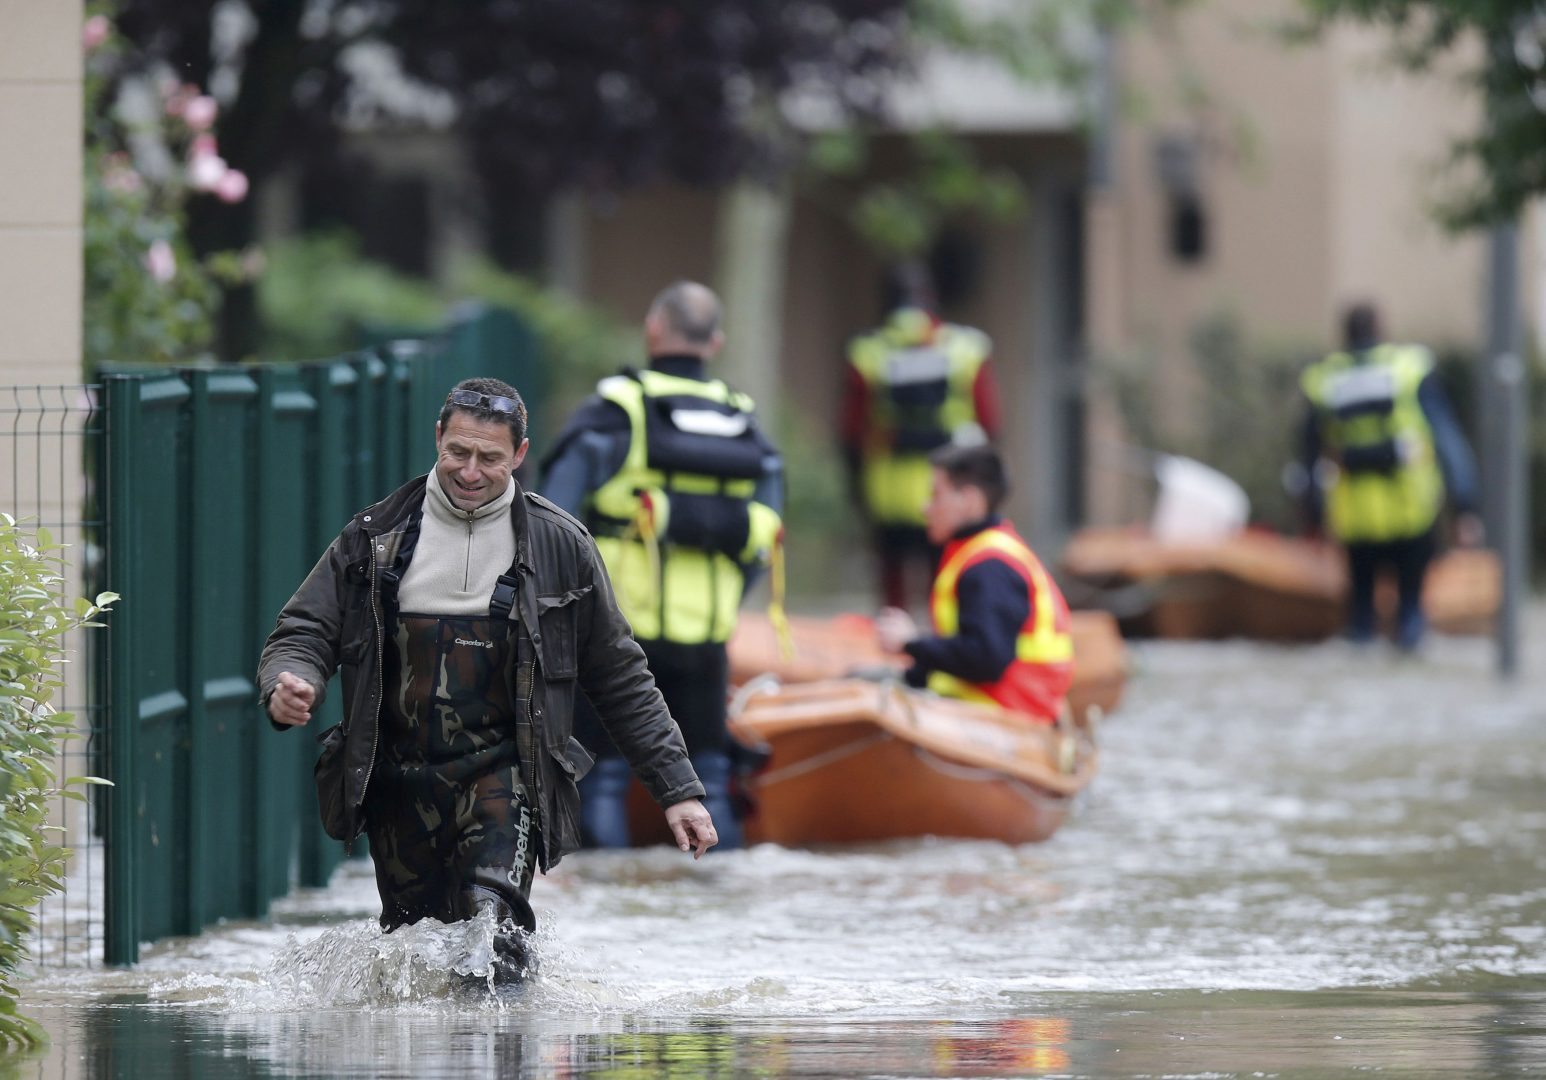 A man walks through a flooded area in Longjumeau, southern Paris, after days of almost non-stop rain caused flooding in the country, June 2, 2016. REUTERS/Christian Hartmann